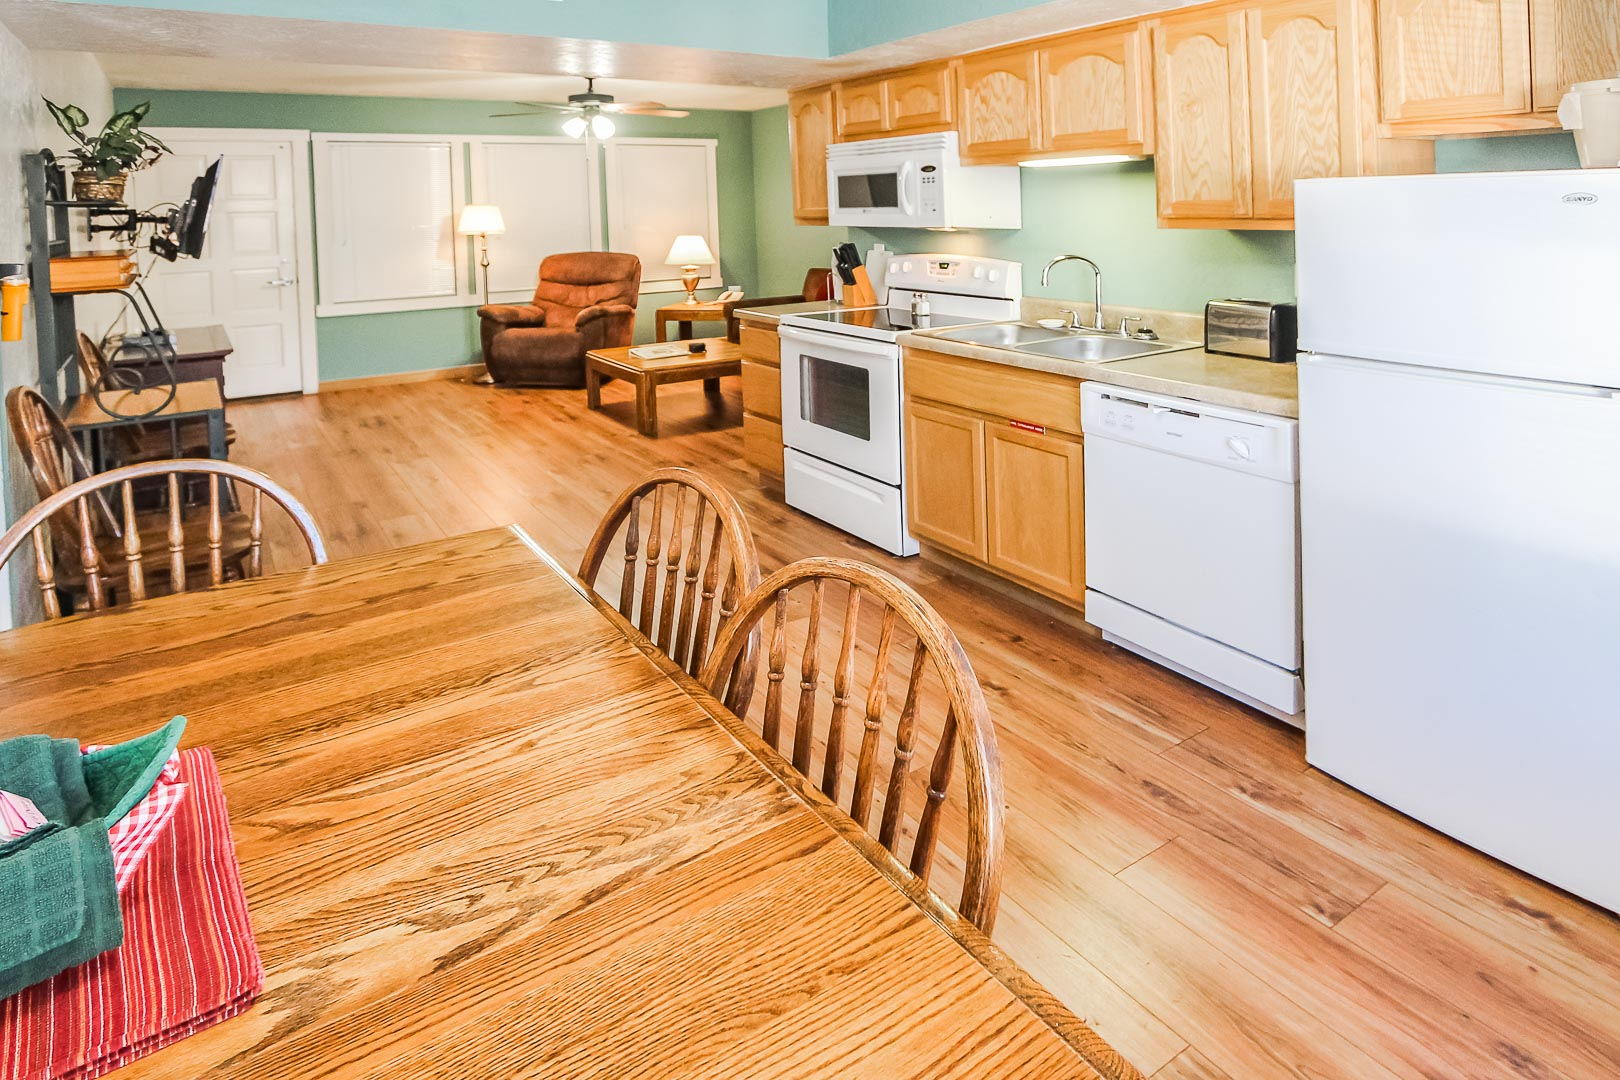 A spacious kitchen at VRI's Roundhouse Resort in Pinetop, Arizona.